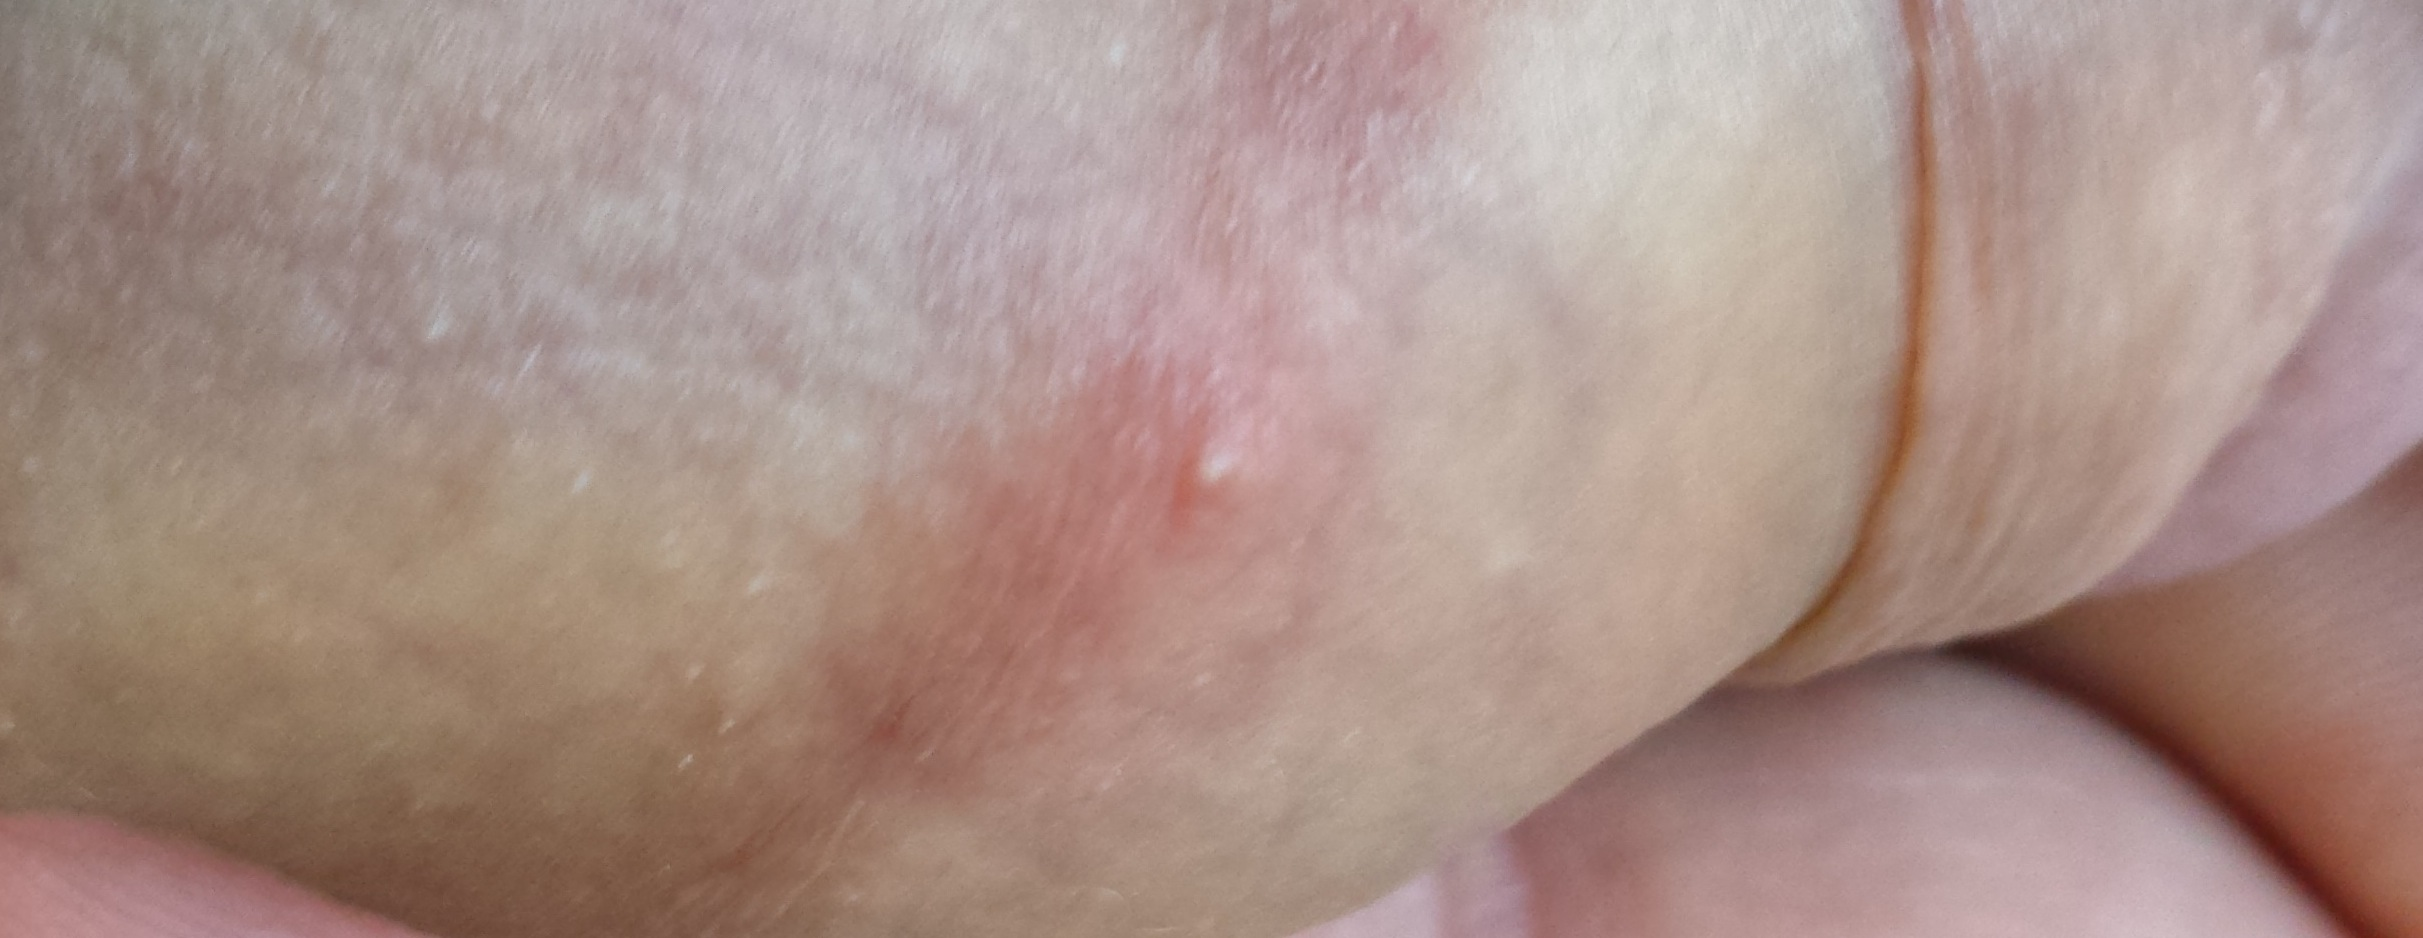 Zit On My Penis 64